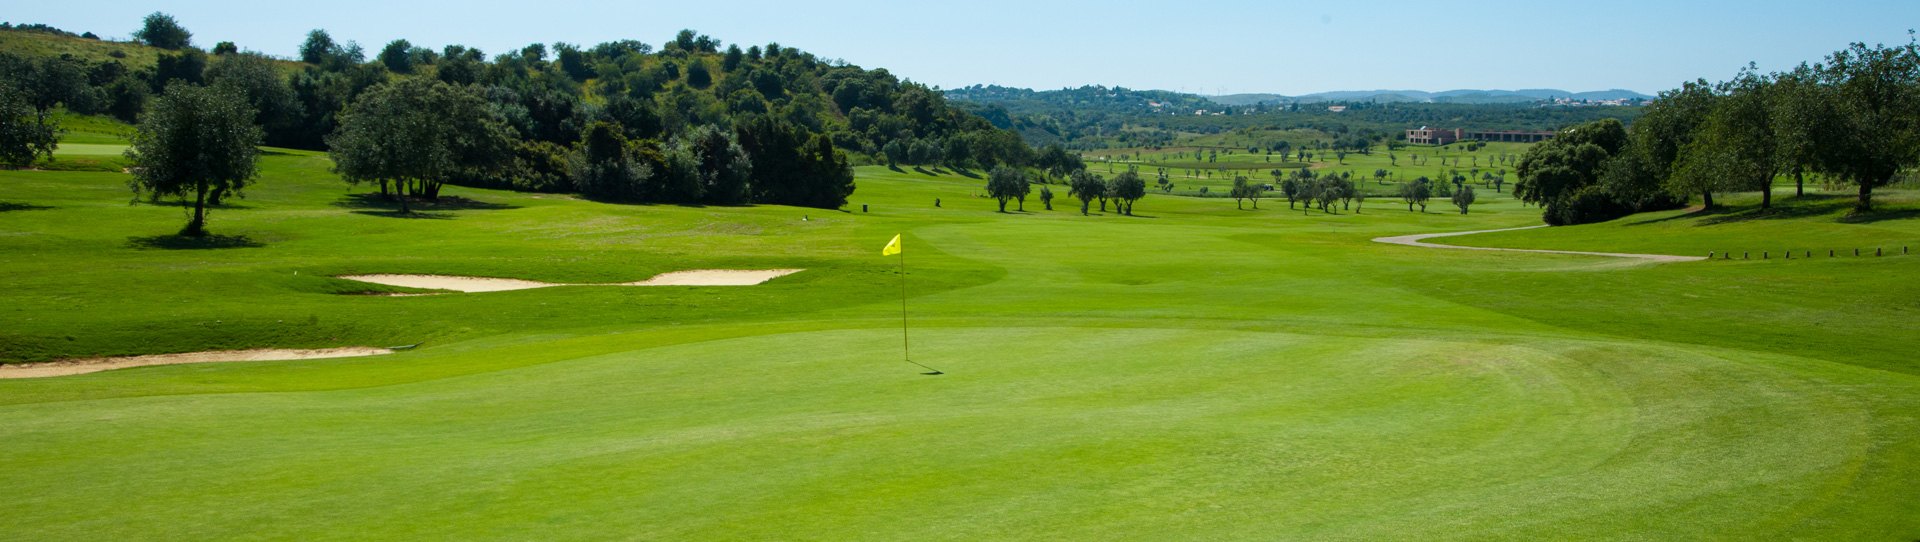 Morgado Golf Course - Photo 1